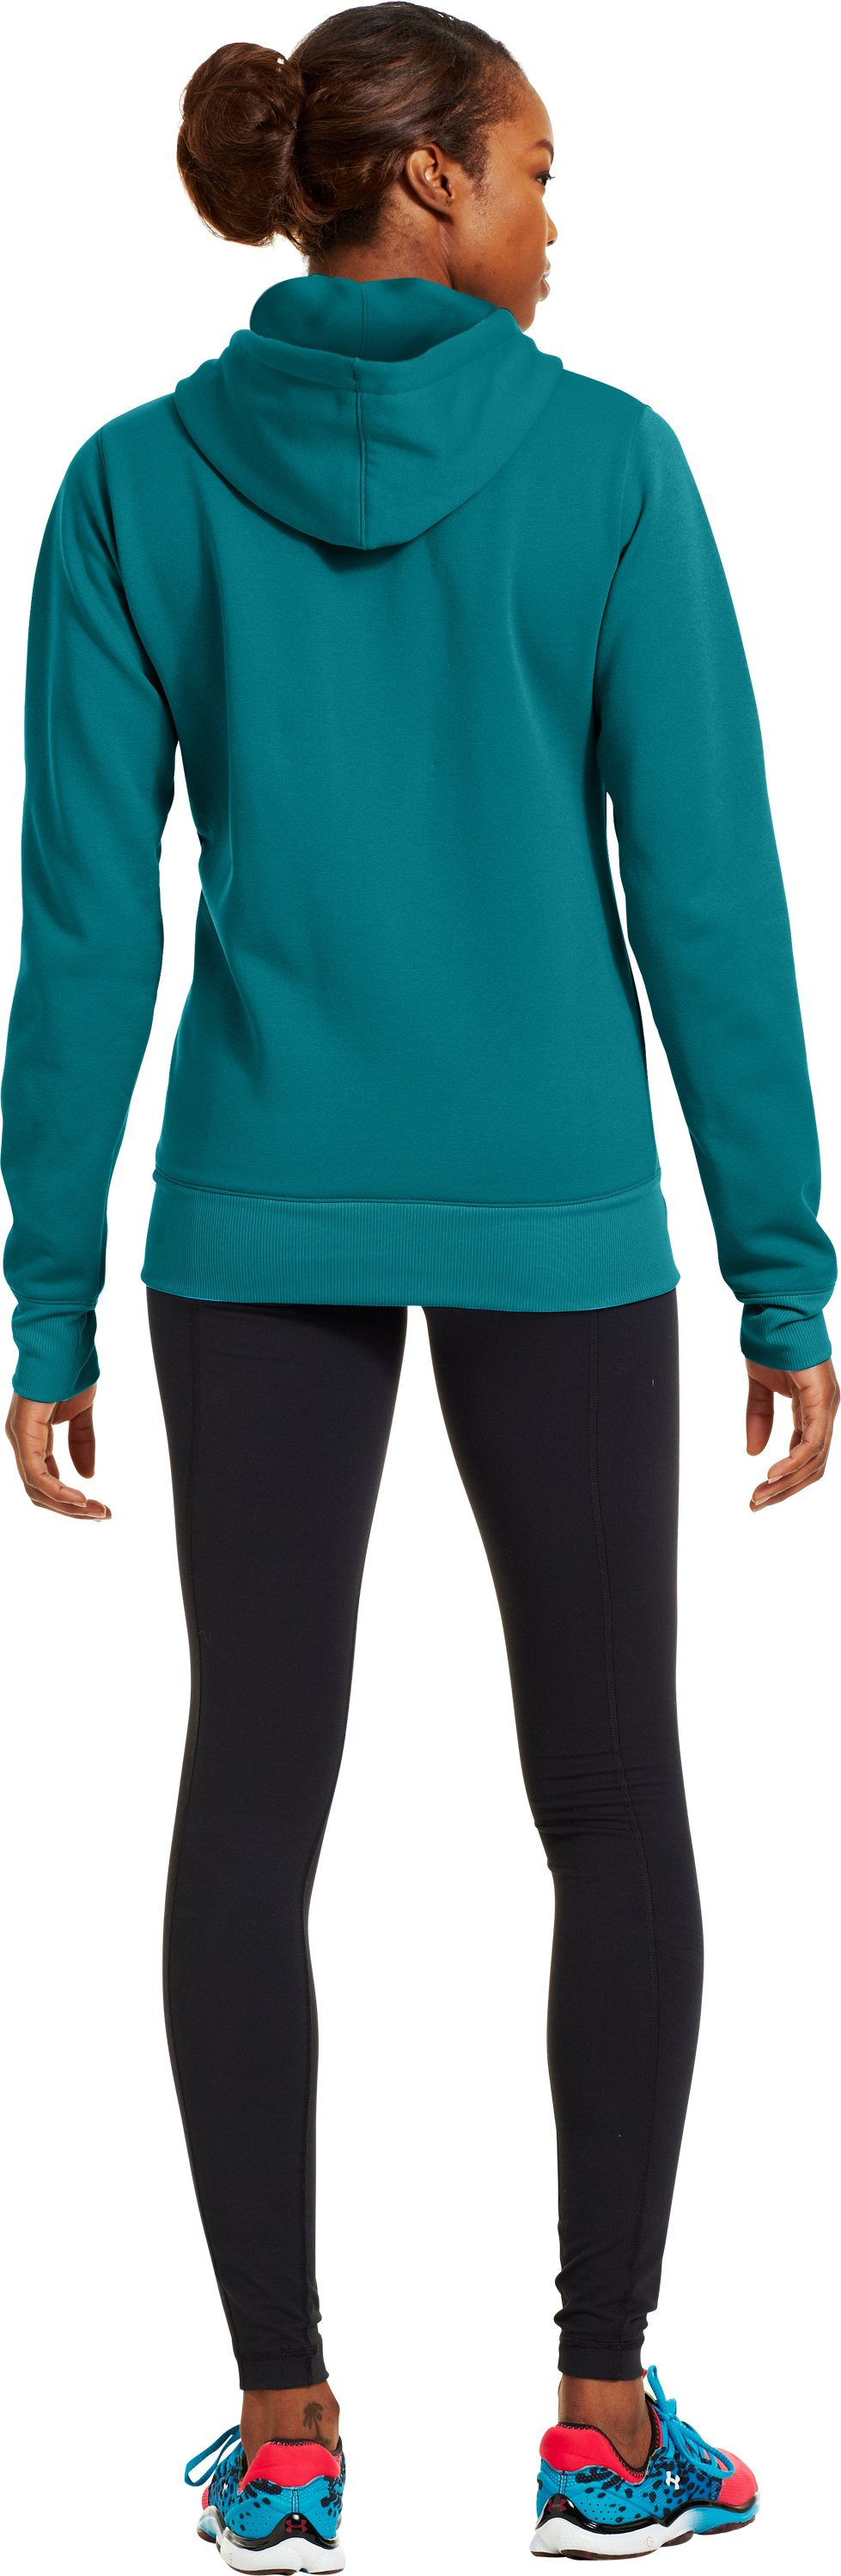 Women's Armour® Fleece Storm Pulse Big Logo Hoodie, CERULEAN, Back